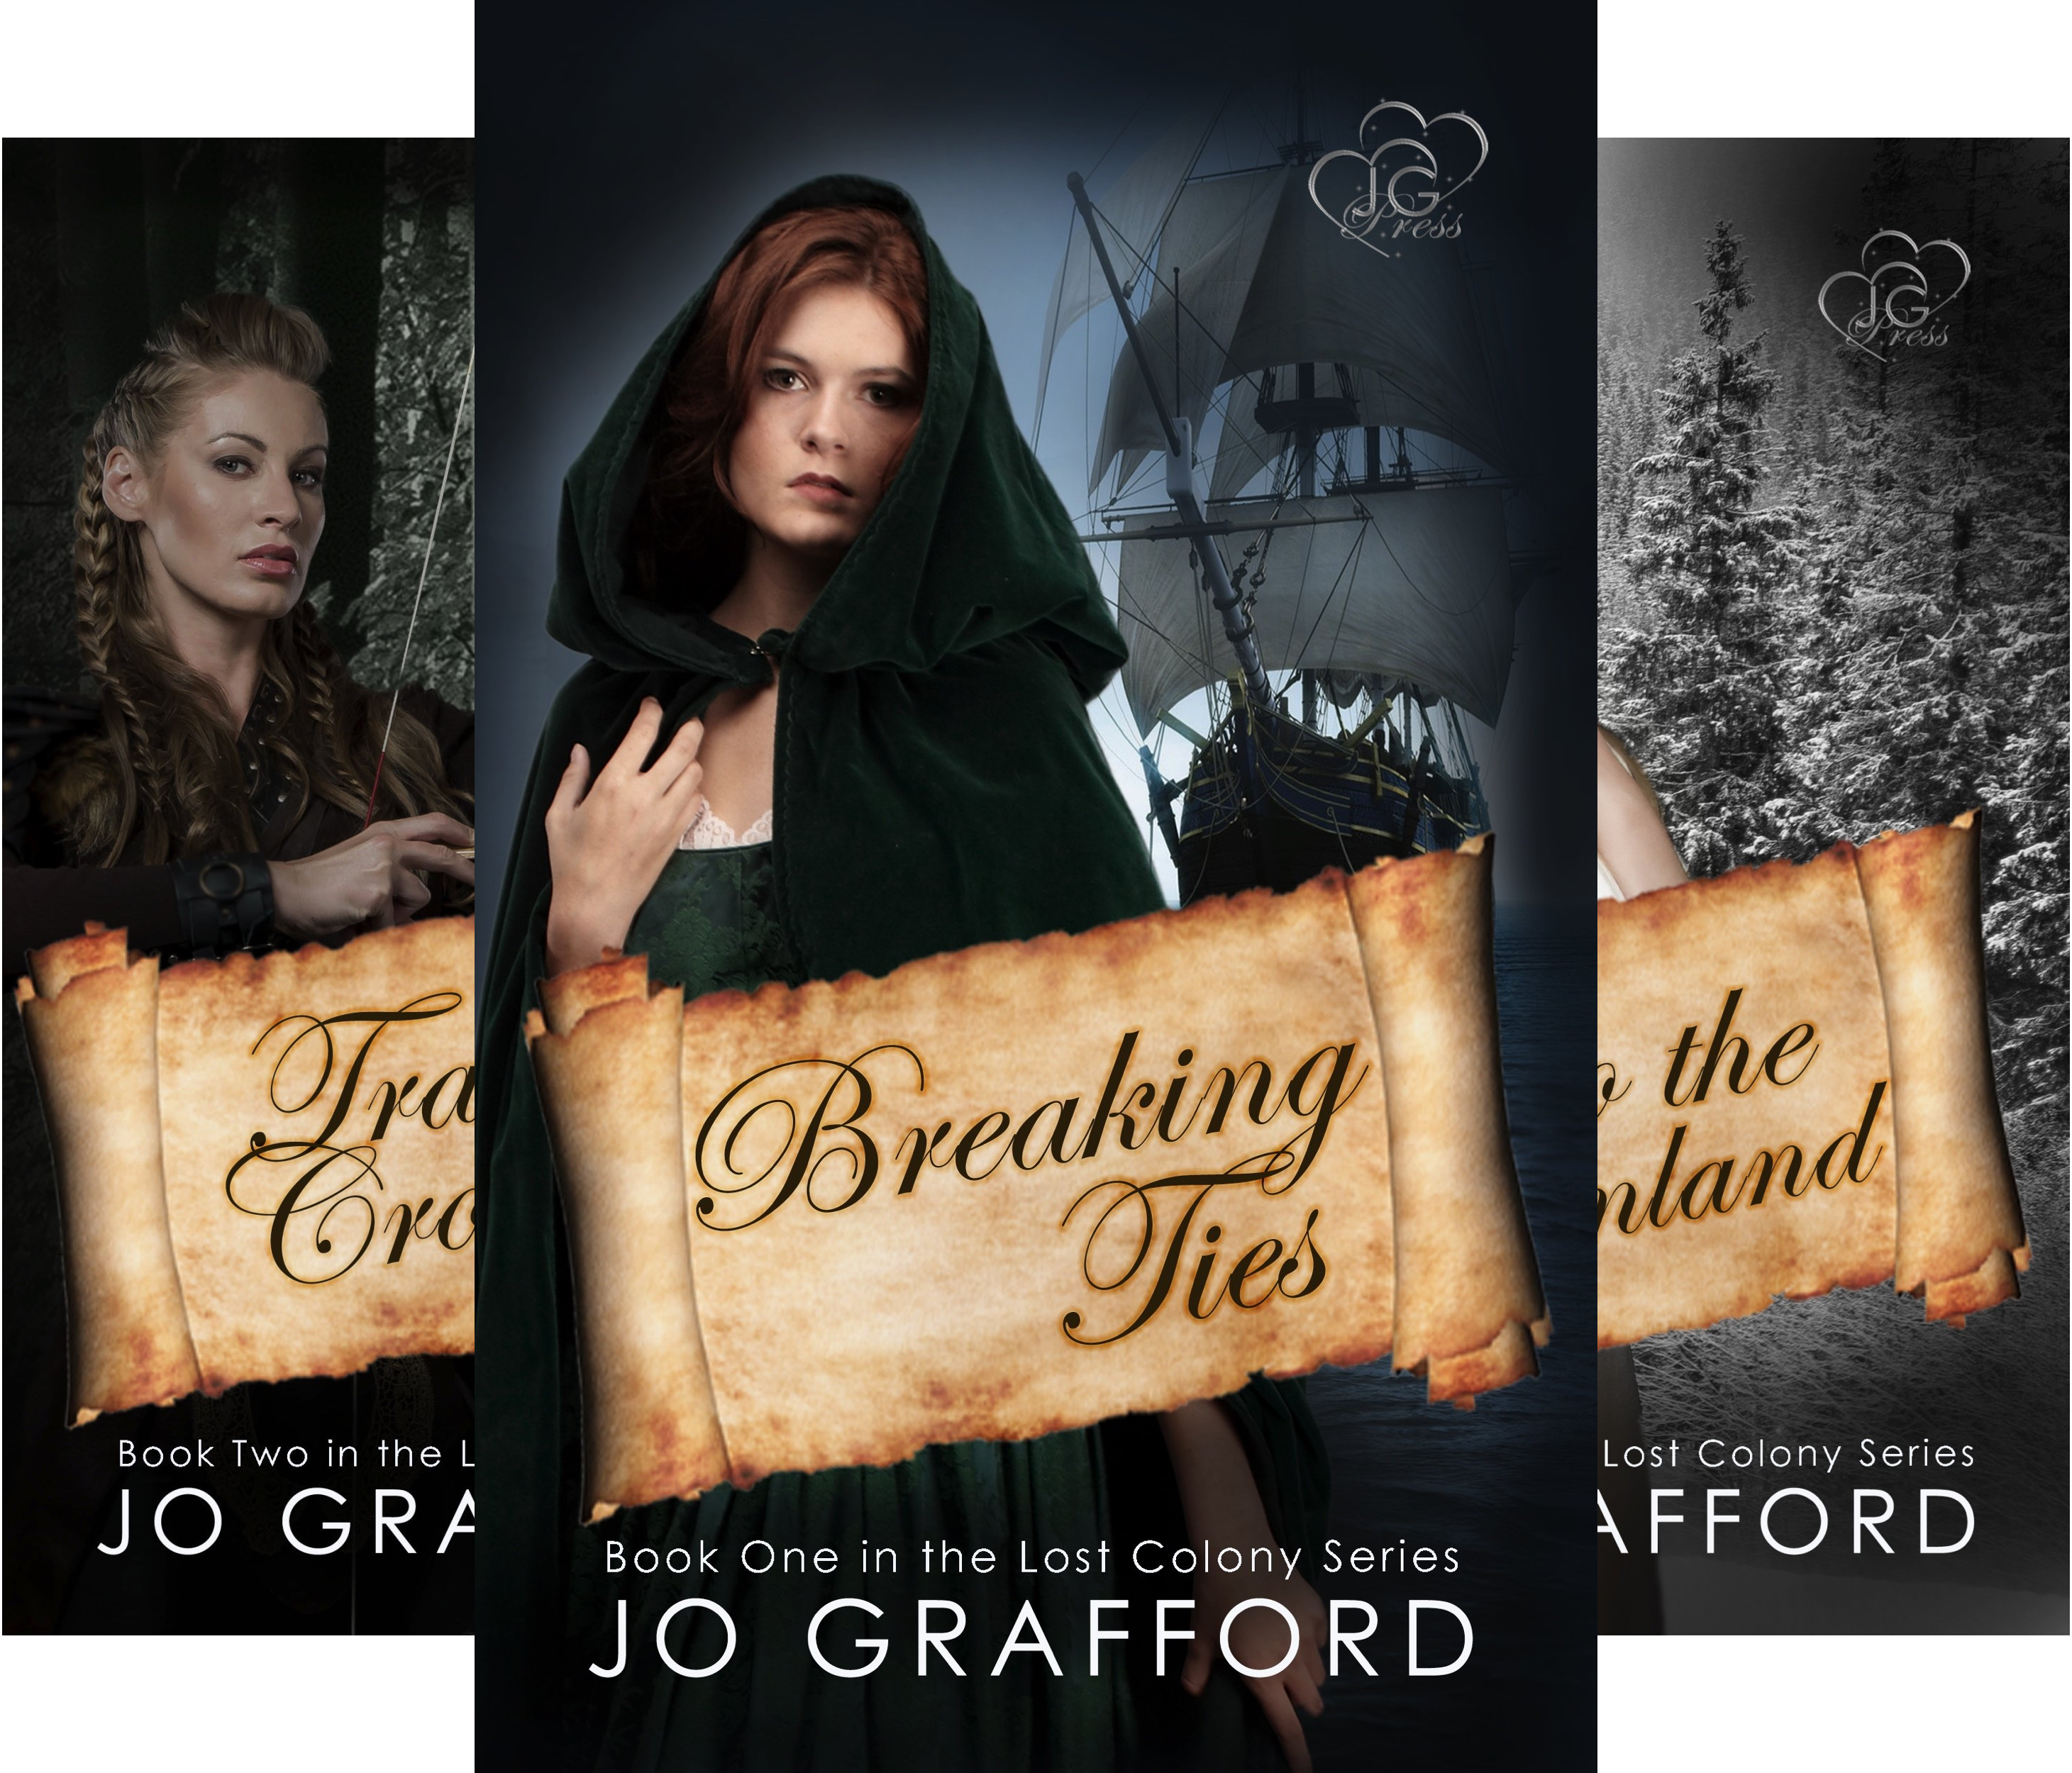 Lost Colony Series (3 Book Series)